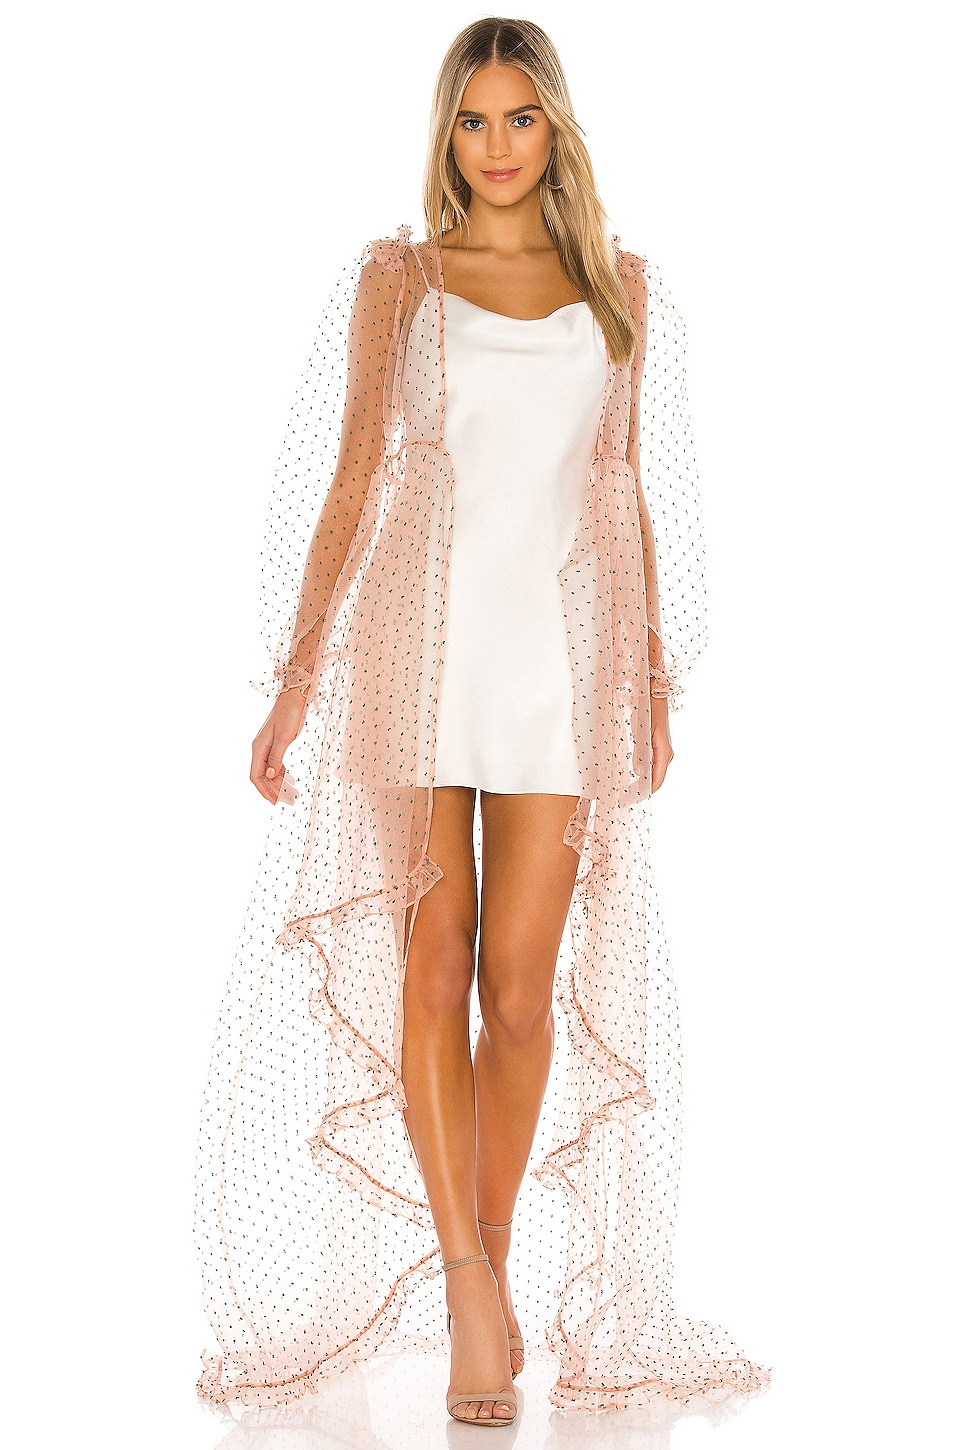 Selkie The Morningglory Kimono Dress in Raphaelite Sprinkle